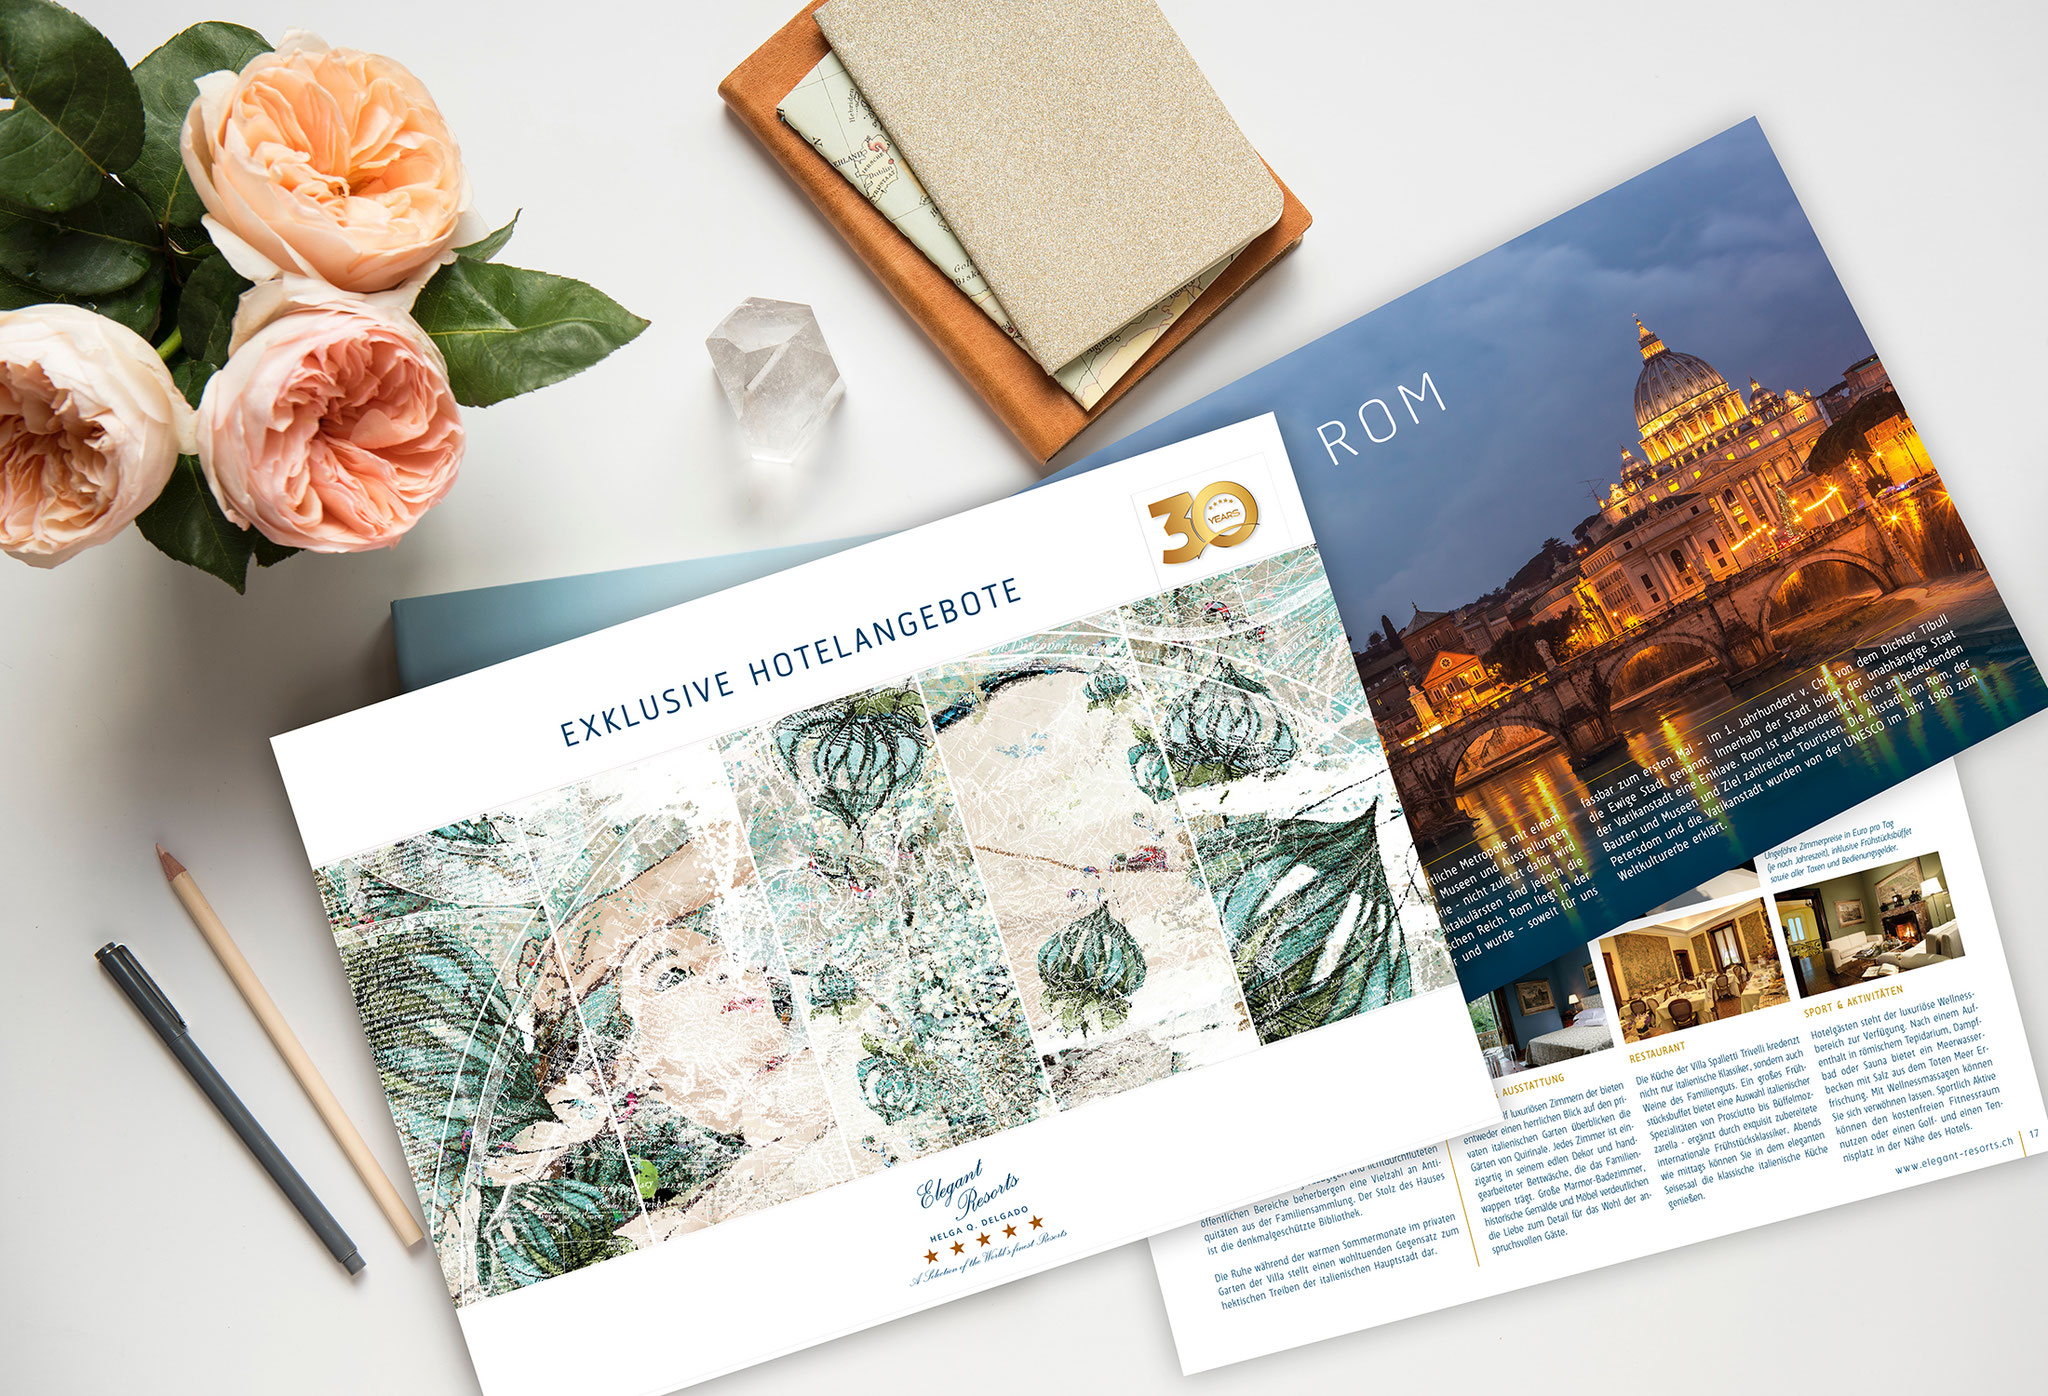 Elegant Resorts | Katalog, Website